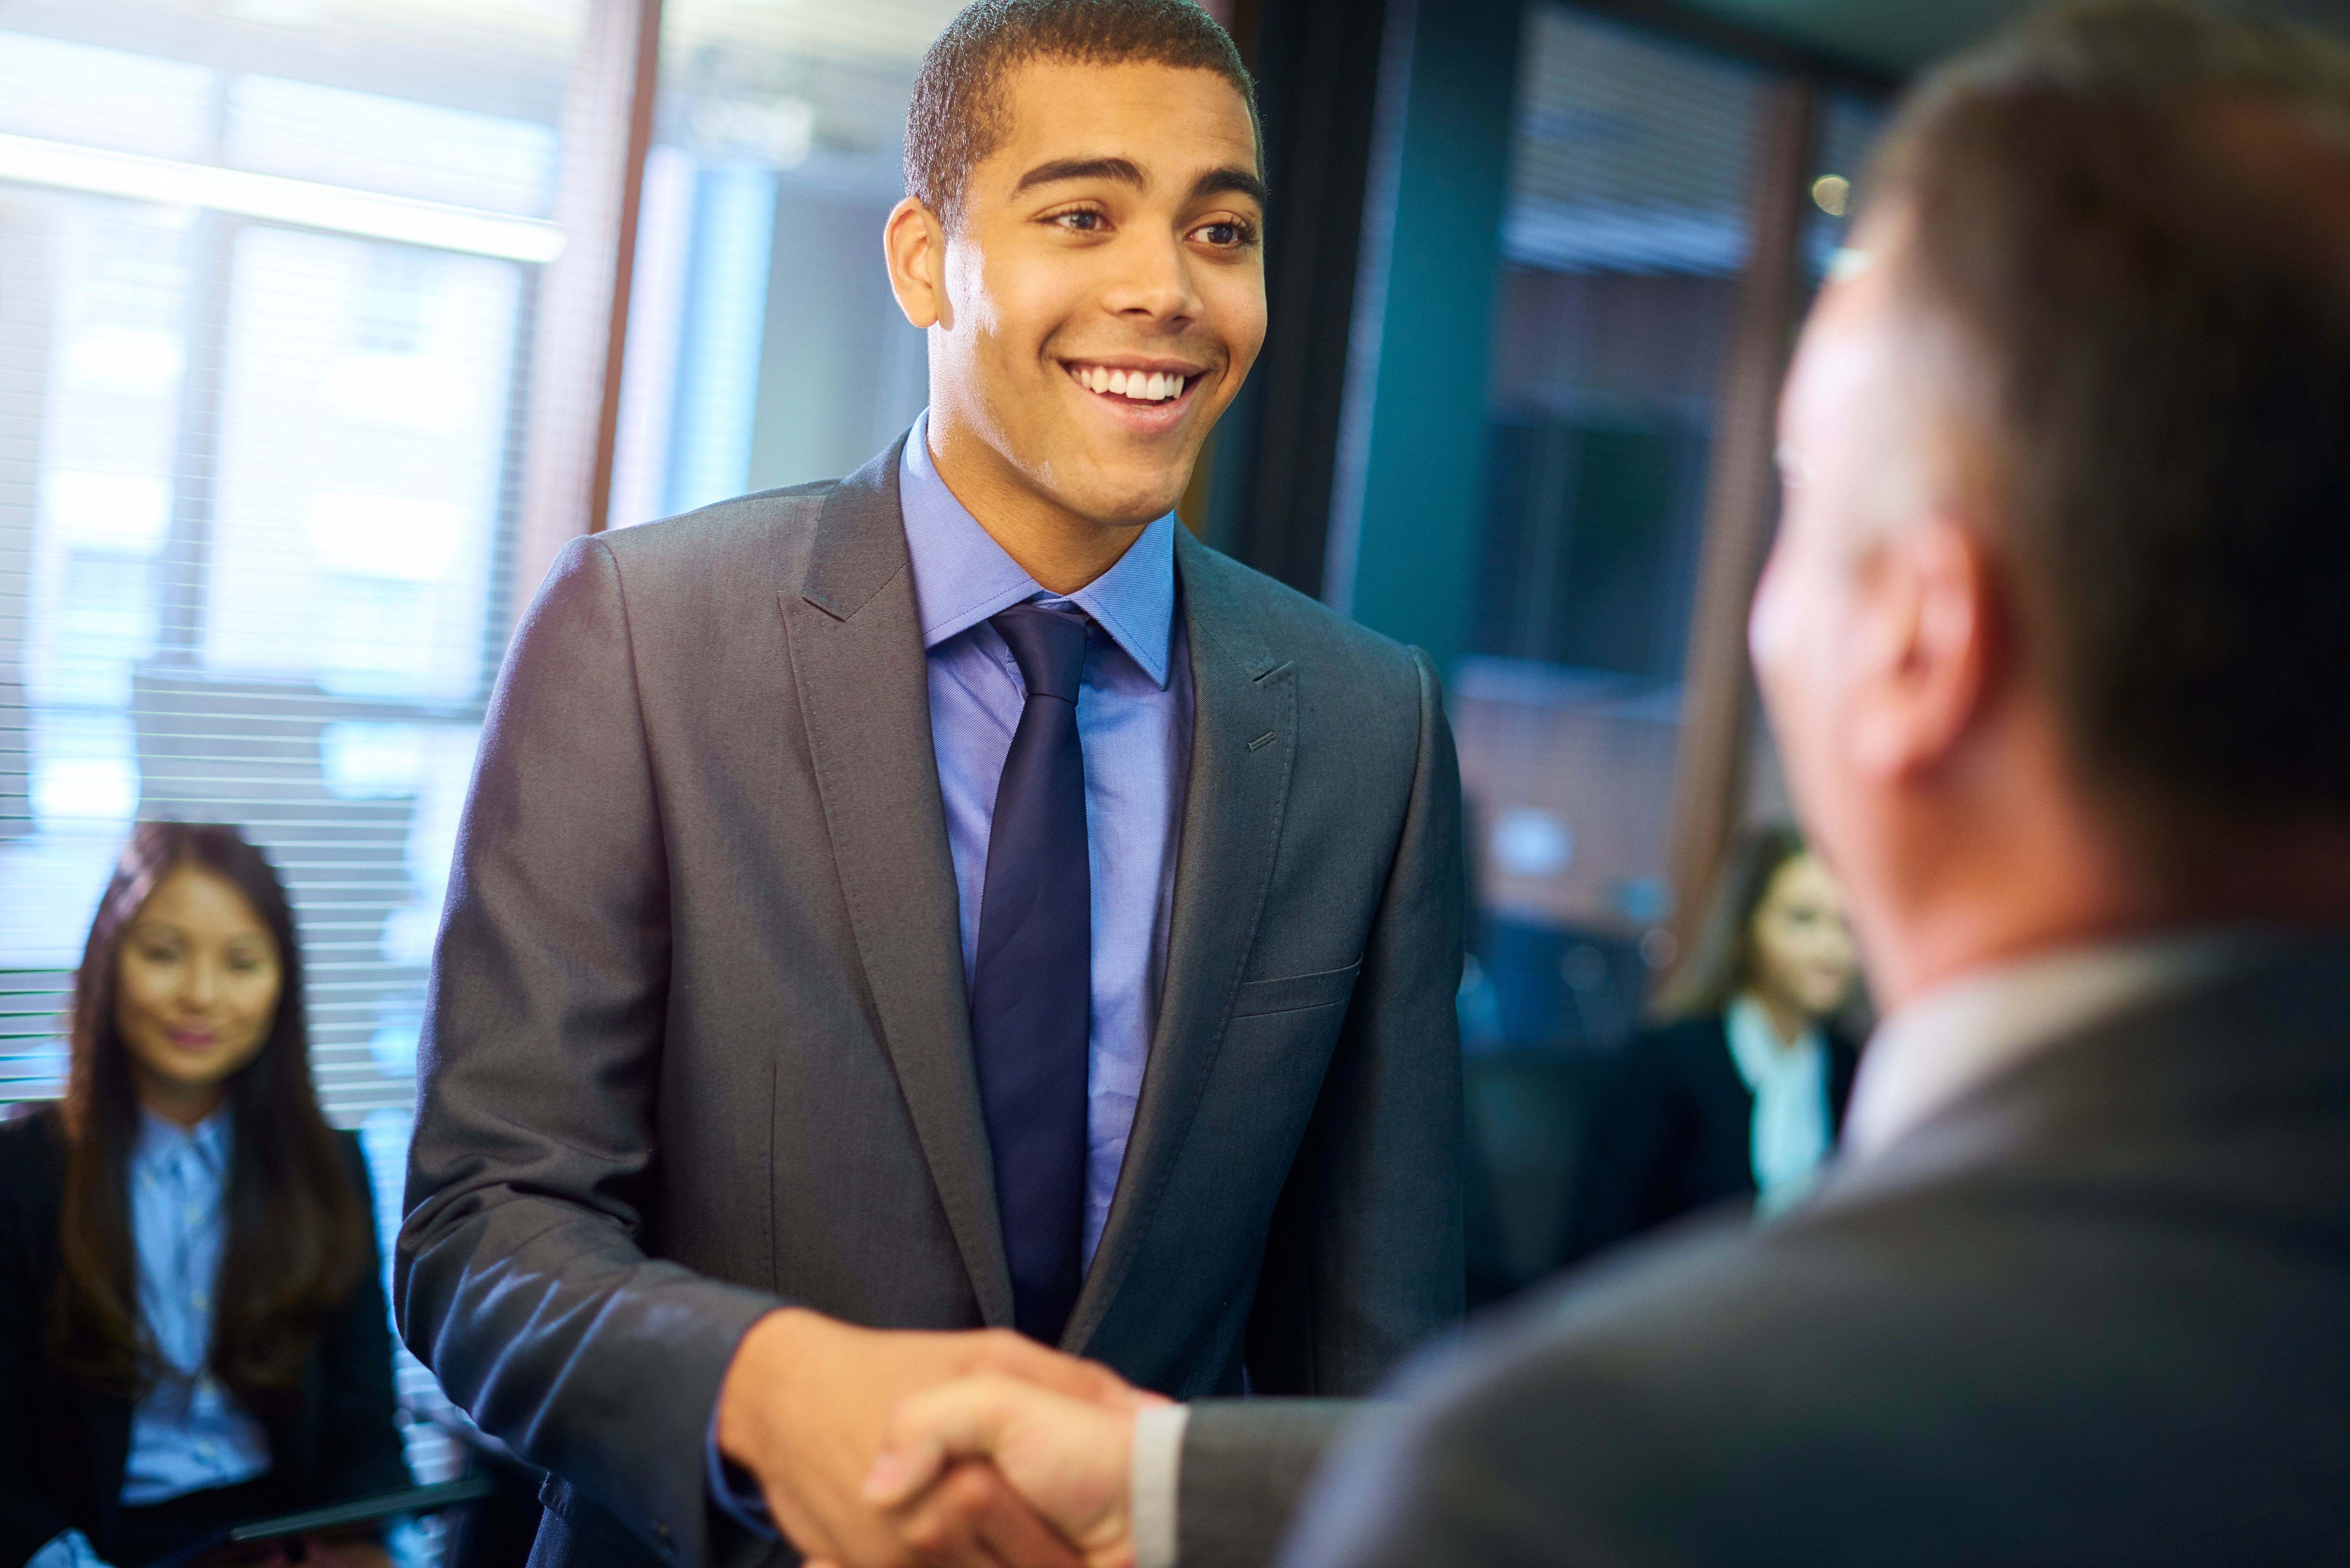 Ask these questions to impress your interviewer and learn important information about the